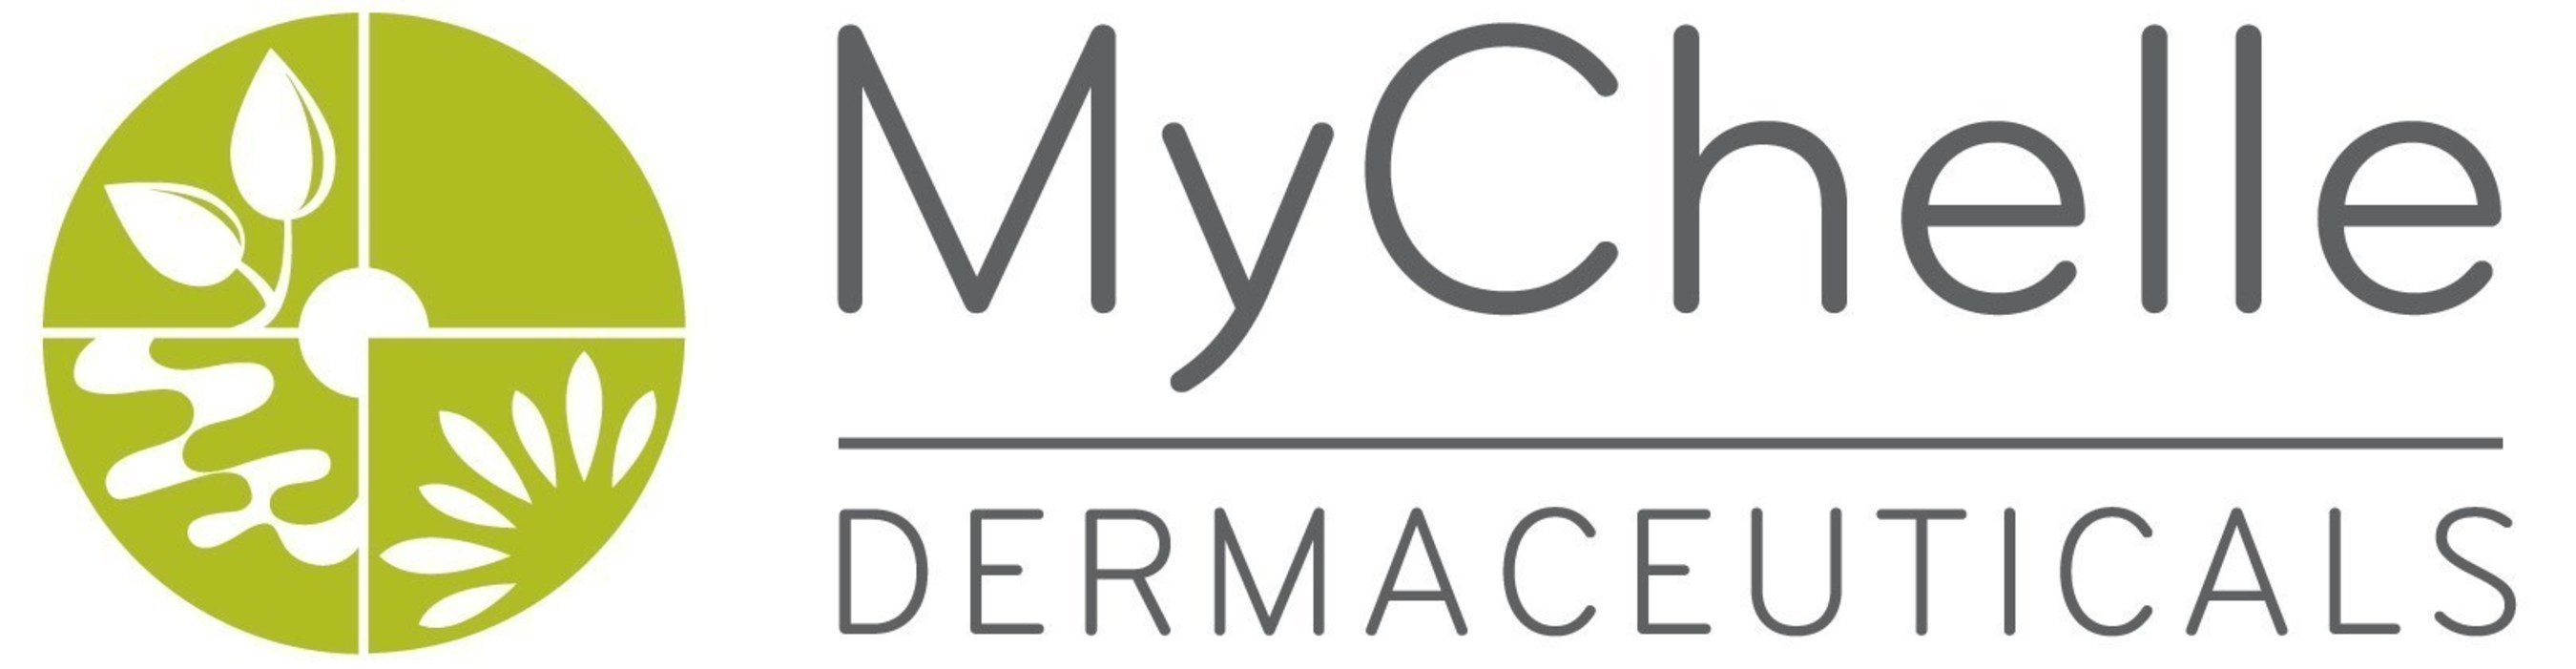 """This spring, MyChelle Dermaceuticals is partnering with the Environmental Working Group (EWG) to promote its Sun Safety public awareness campaign, which launches May 1. """"Practice Smart Sun"""" aims to provide the public information and advice for reducing the risks of skin damage and diseases related to inadequate sun protection."""